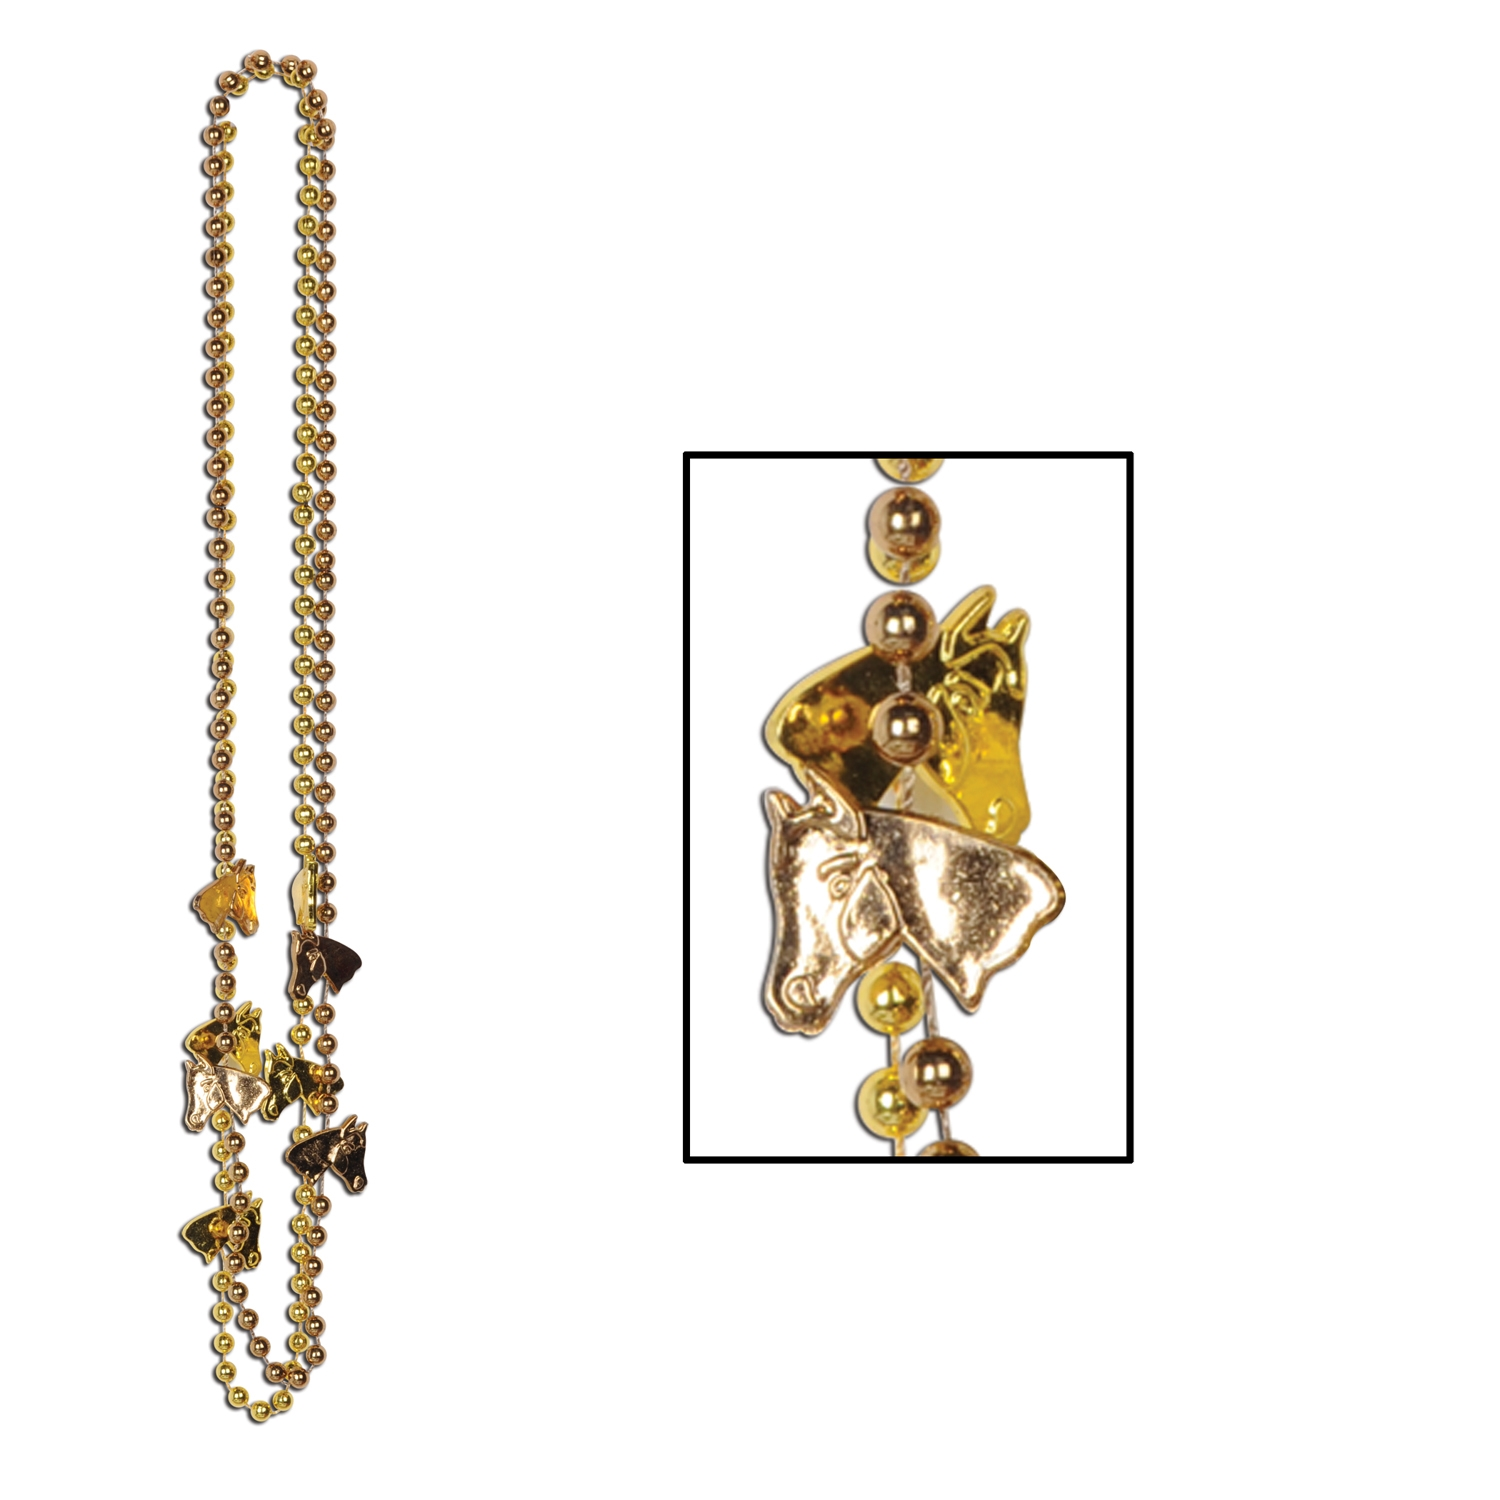 gold necklace with horse charms hanging off of the beads